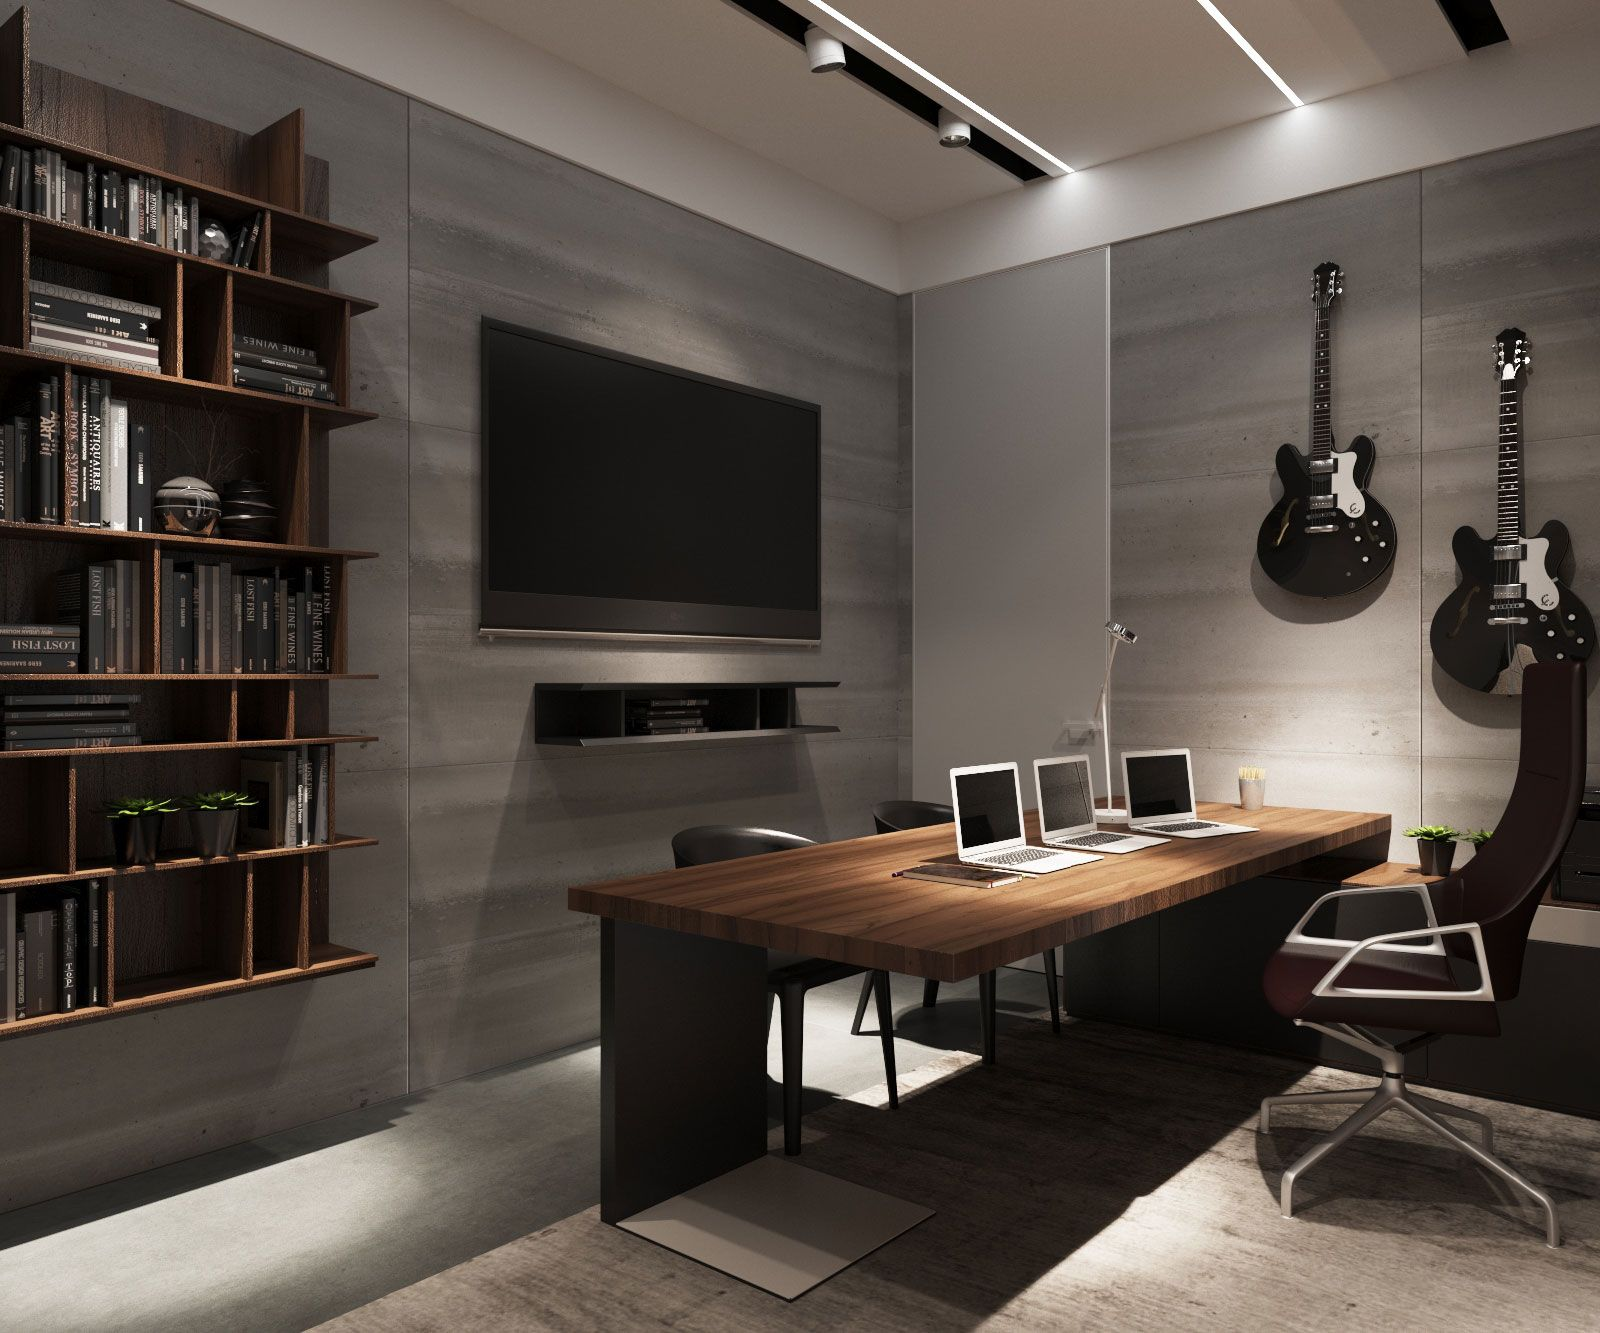 9j apartment by s t architects 17 home office home - Home office setup ideas ...